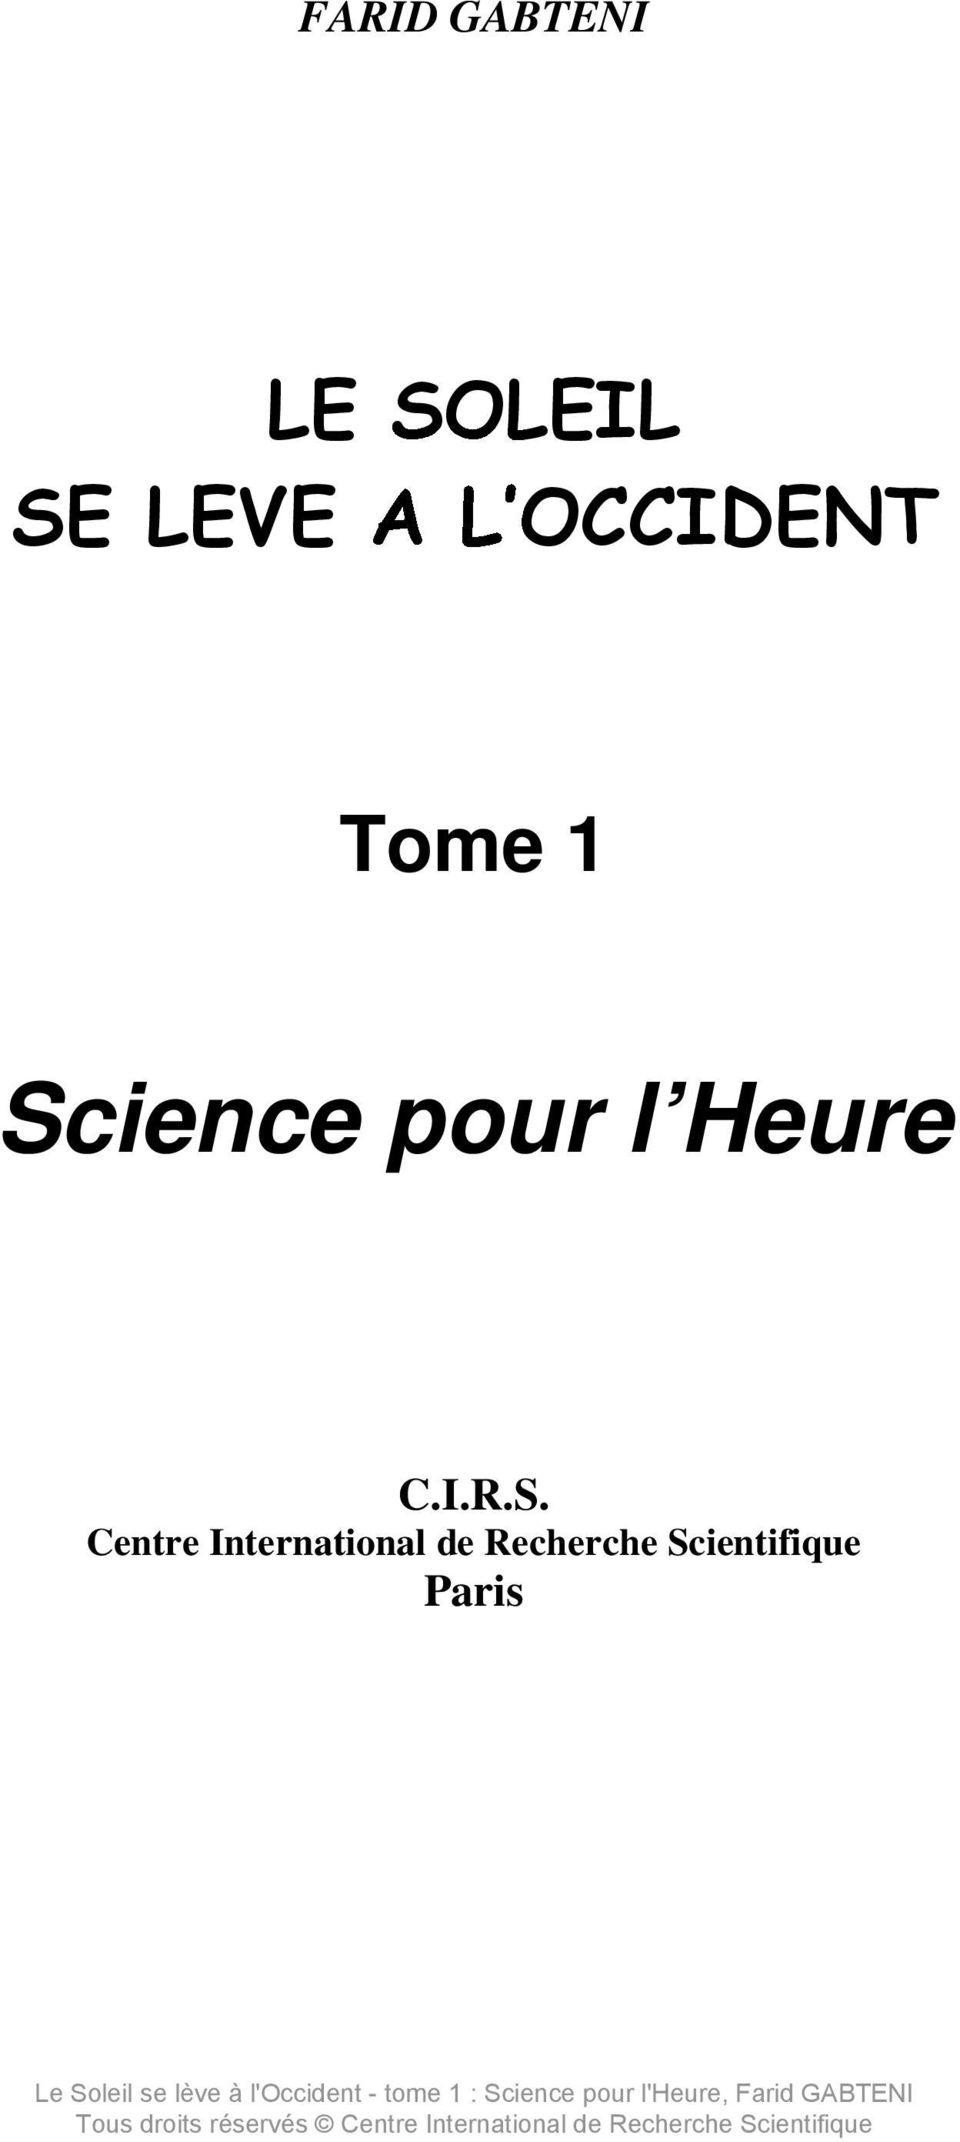 Heure C.I.R.S.